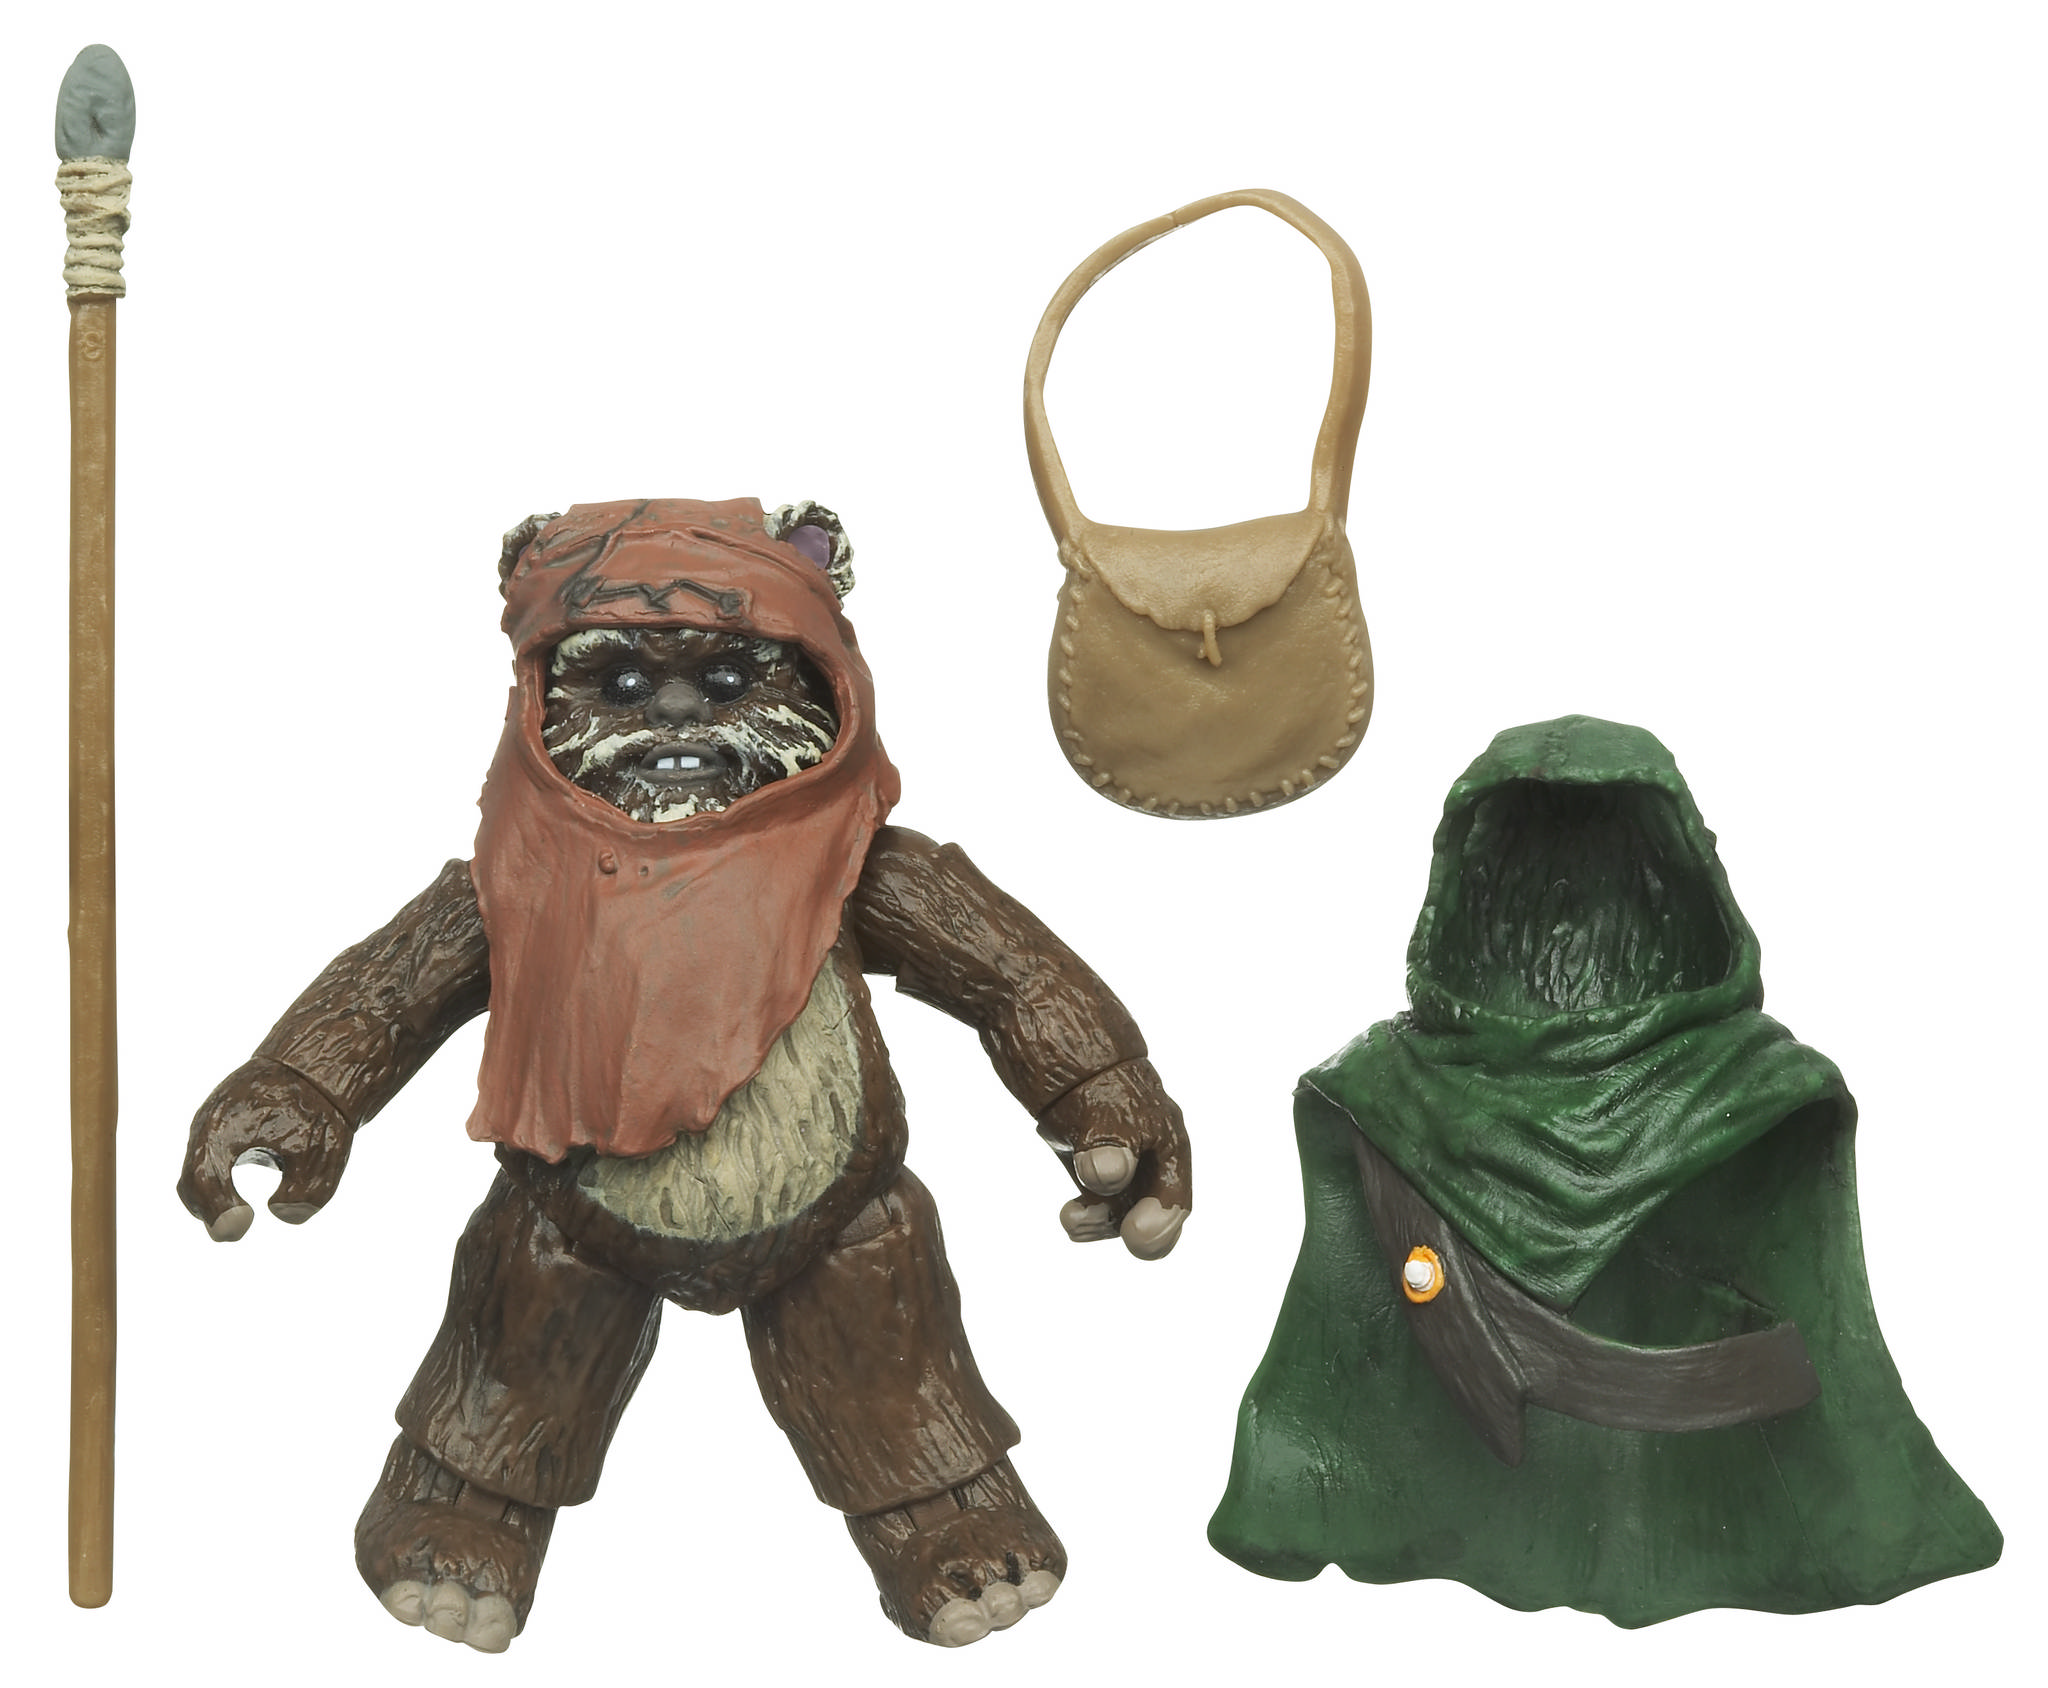 STAR WARS THE VINTAGE COLLECTION 3.75 INCH WICKET Figure